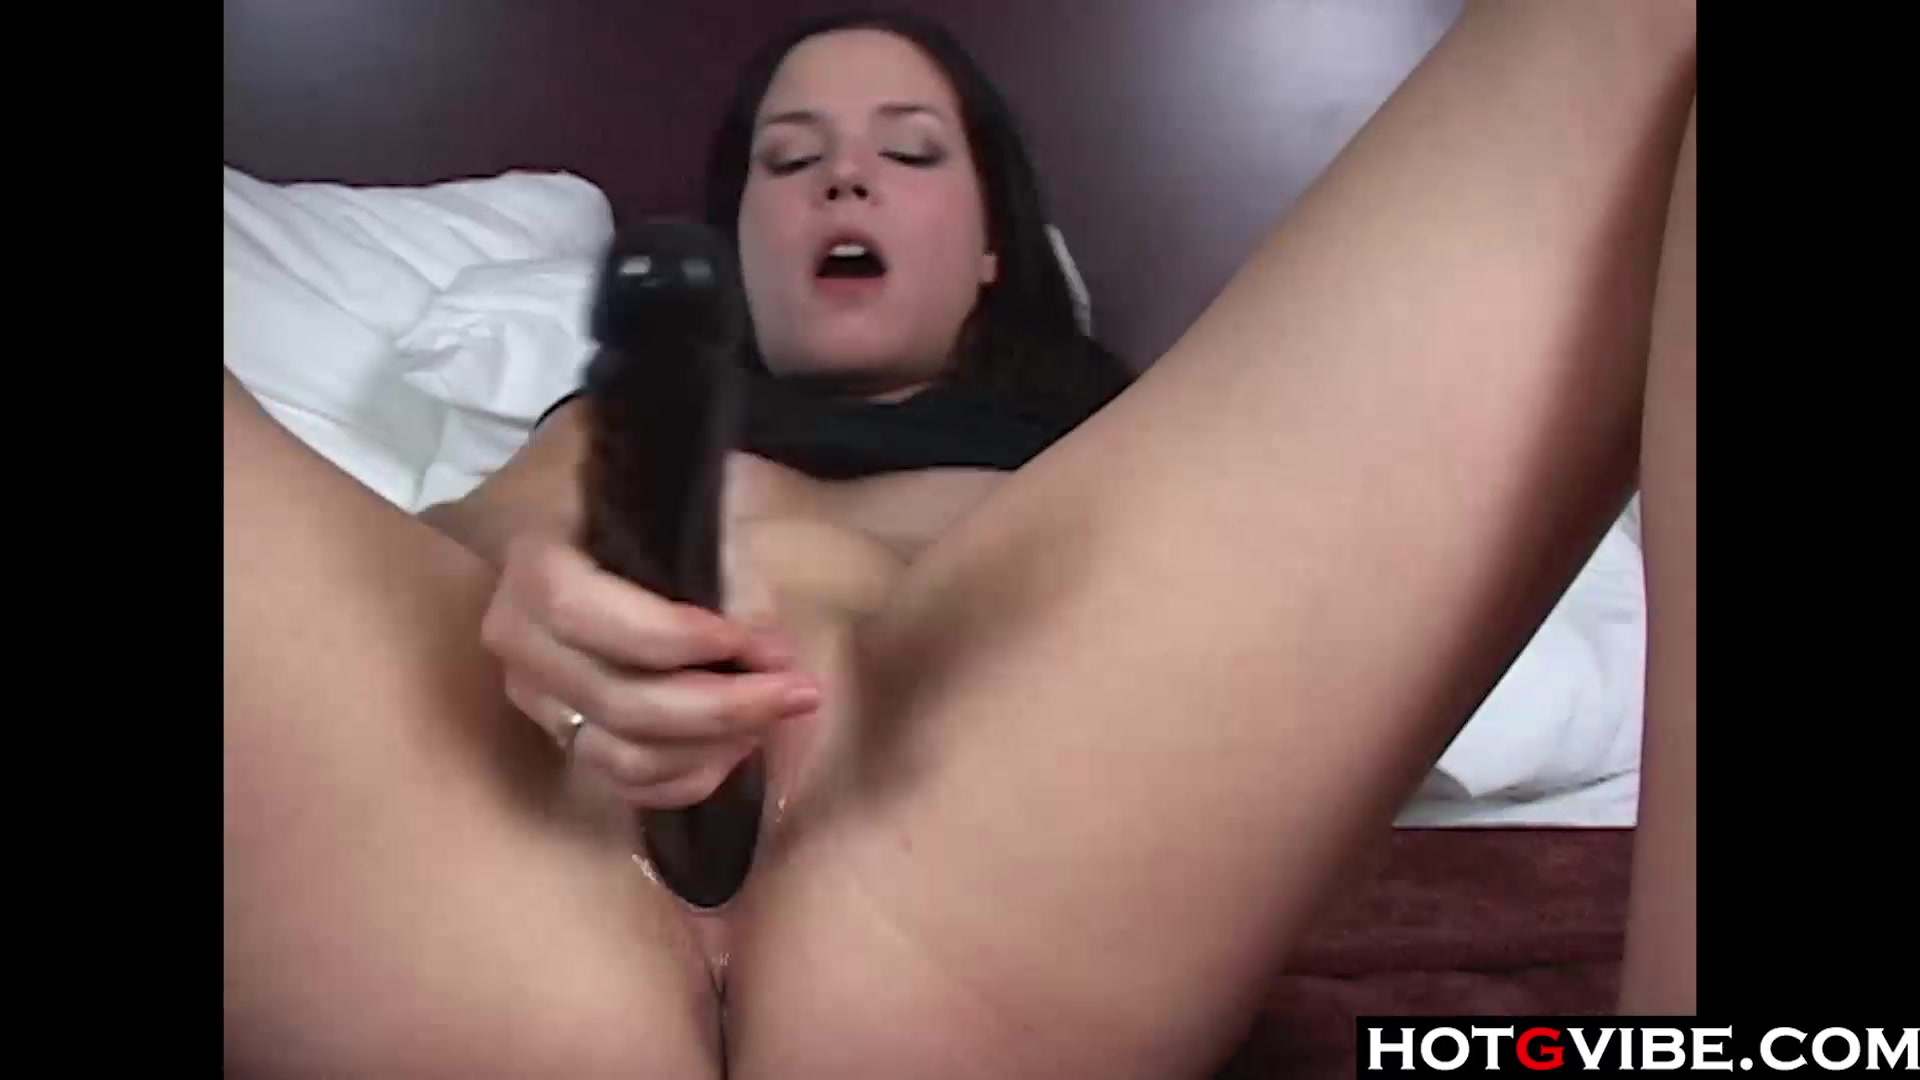 Giant cock anal free